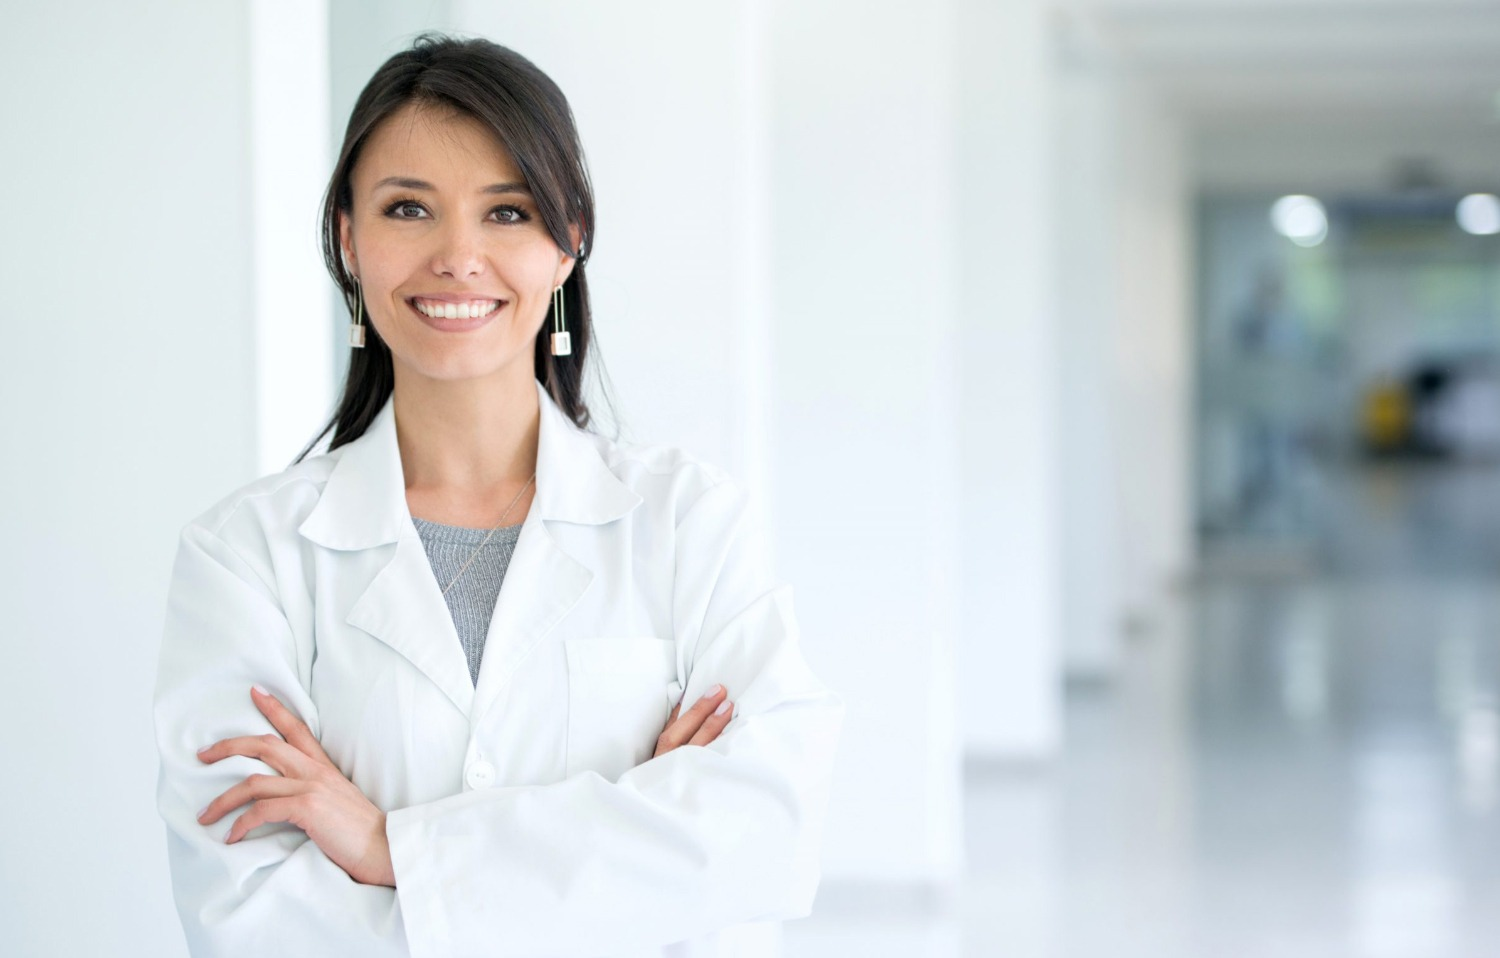 Doctor with crossed arms posing in hallway | Diagnose Your Practice